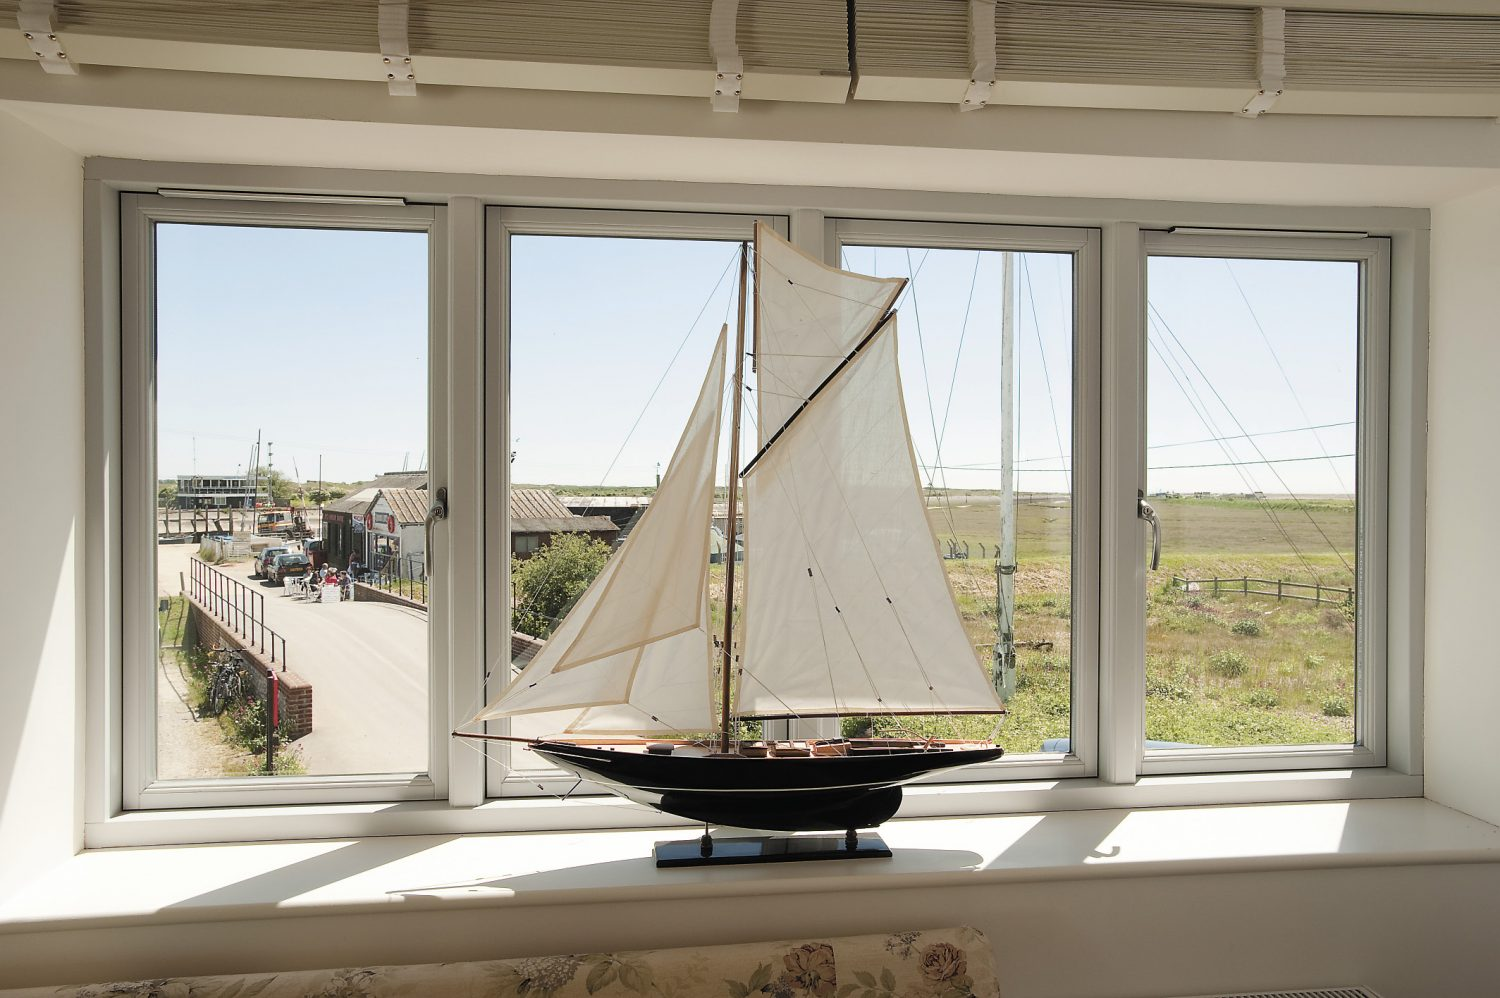 The windows were bespoke made under strict ecological guidelines in Denmark to withstand the coastal weather